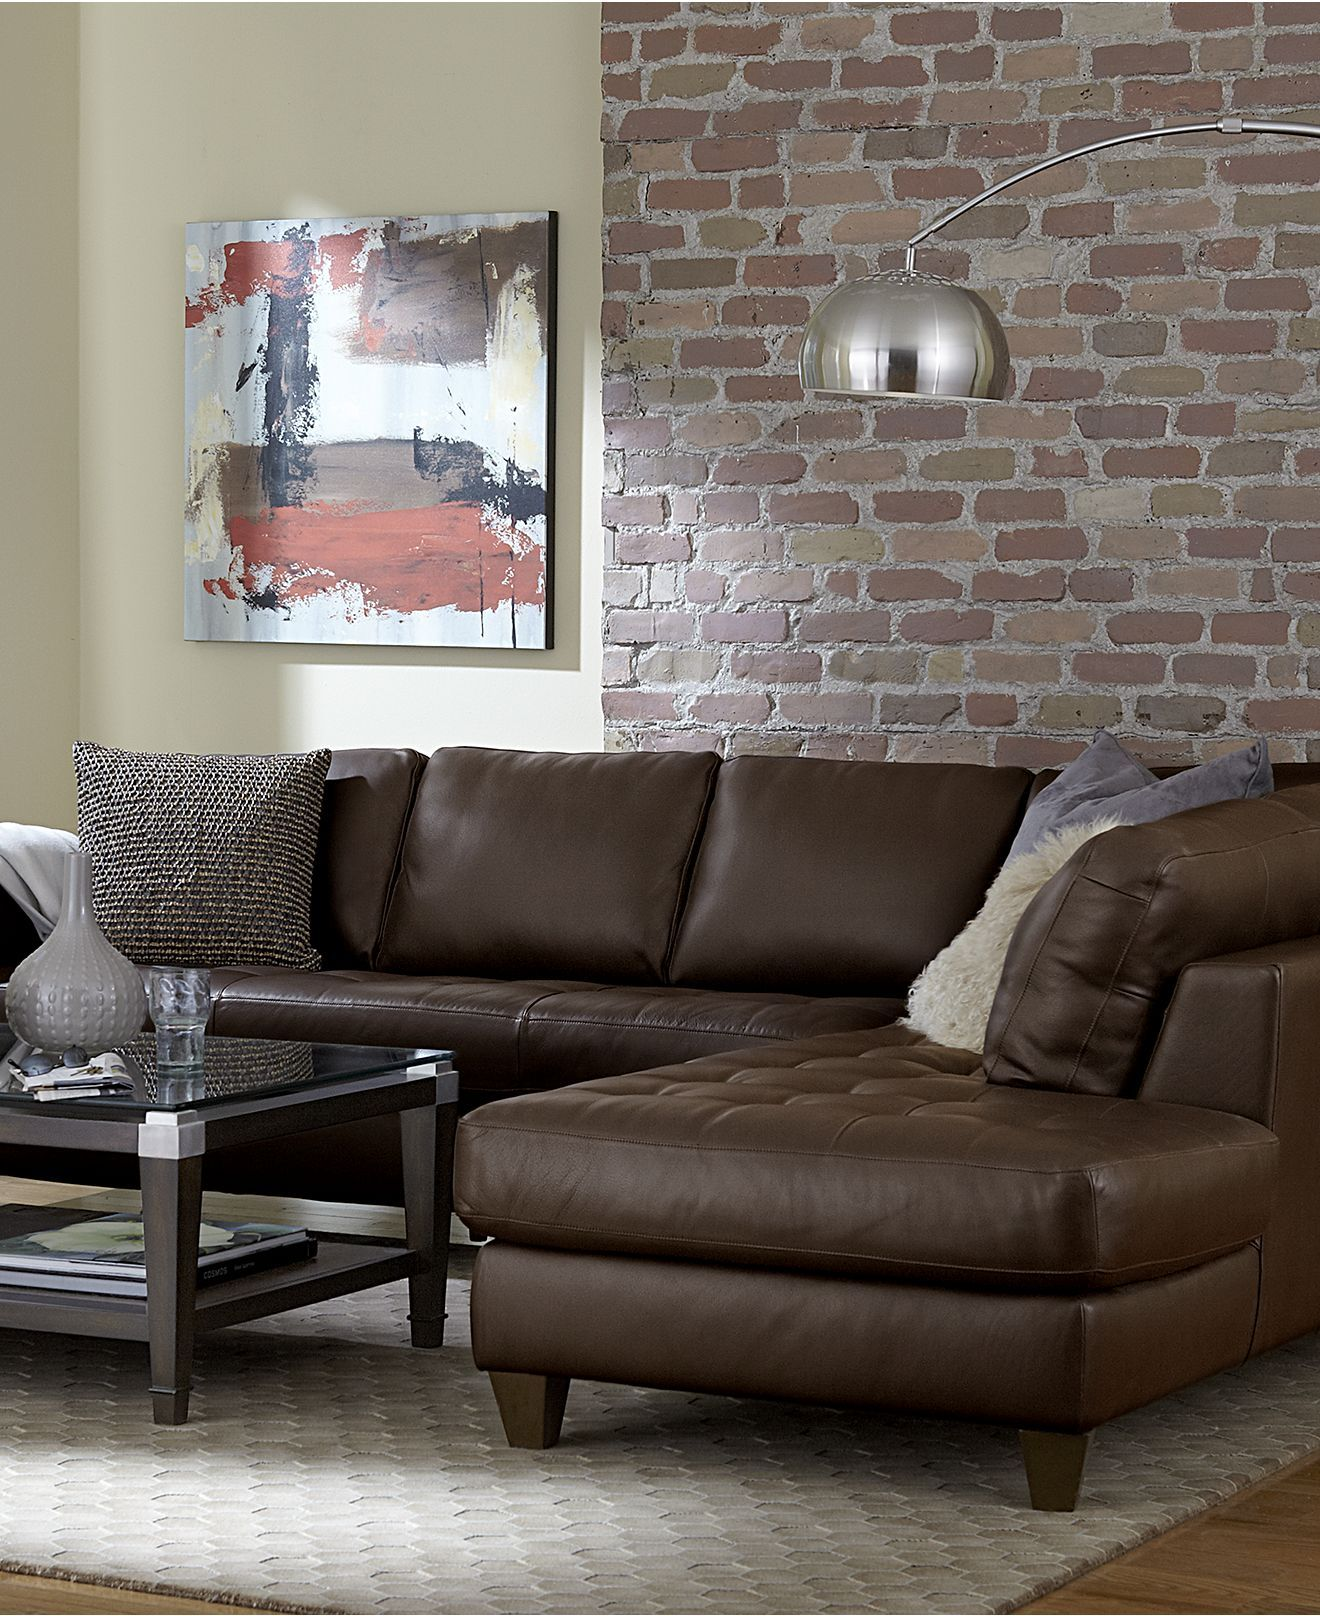 Milano Leather Sectional from Macy\'s | Houses and apartments IDEAS ...